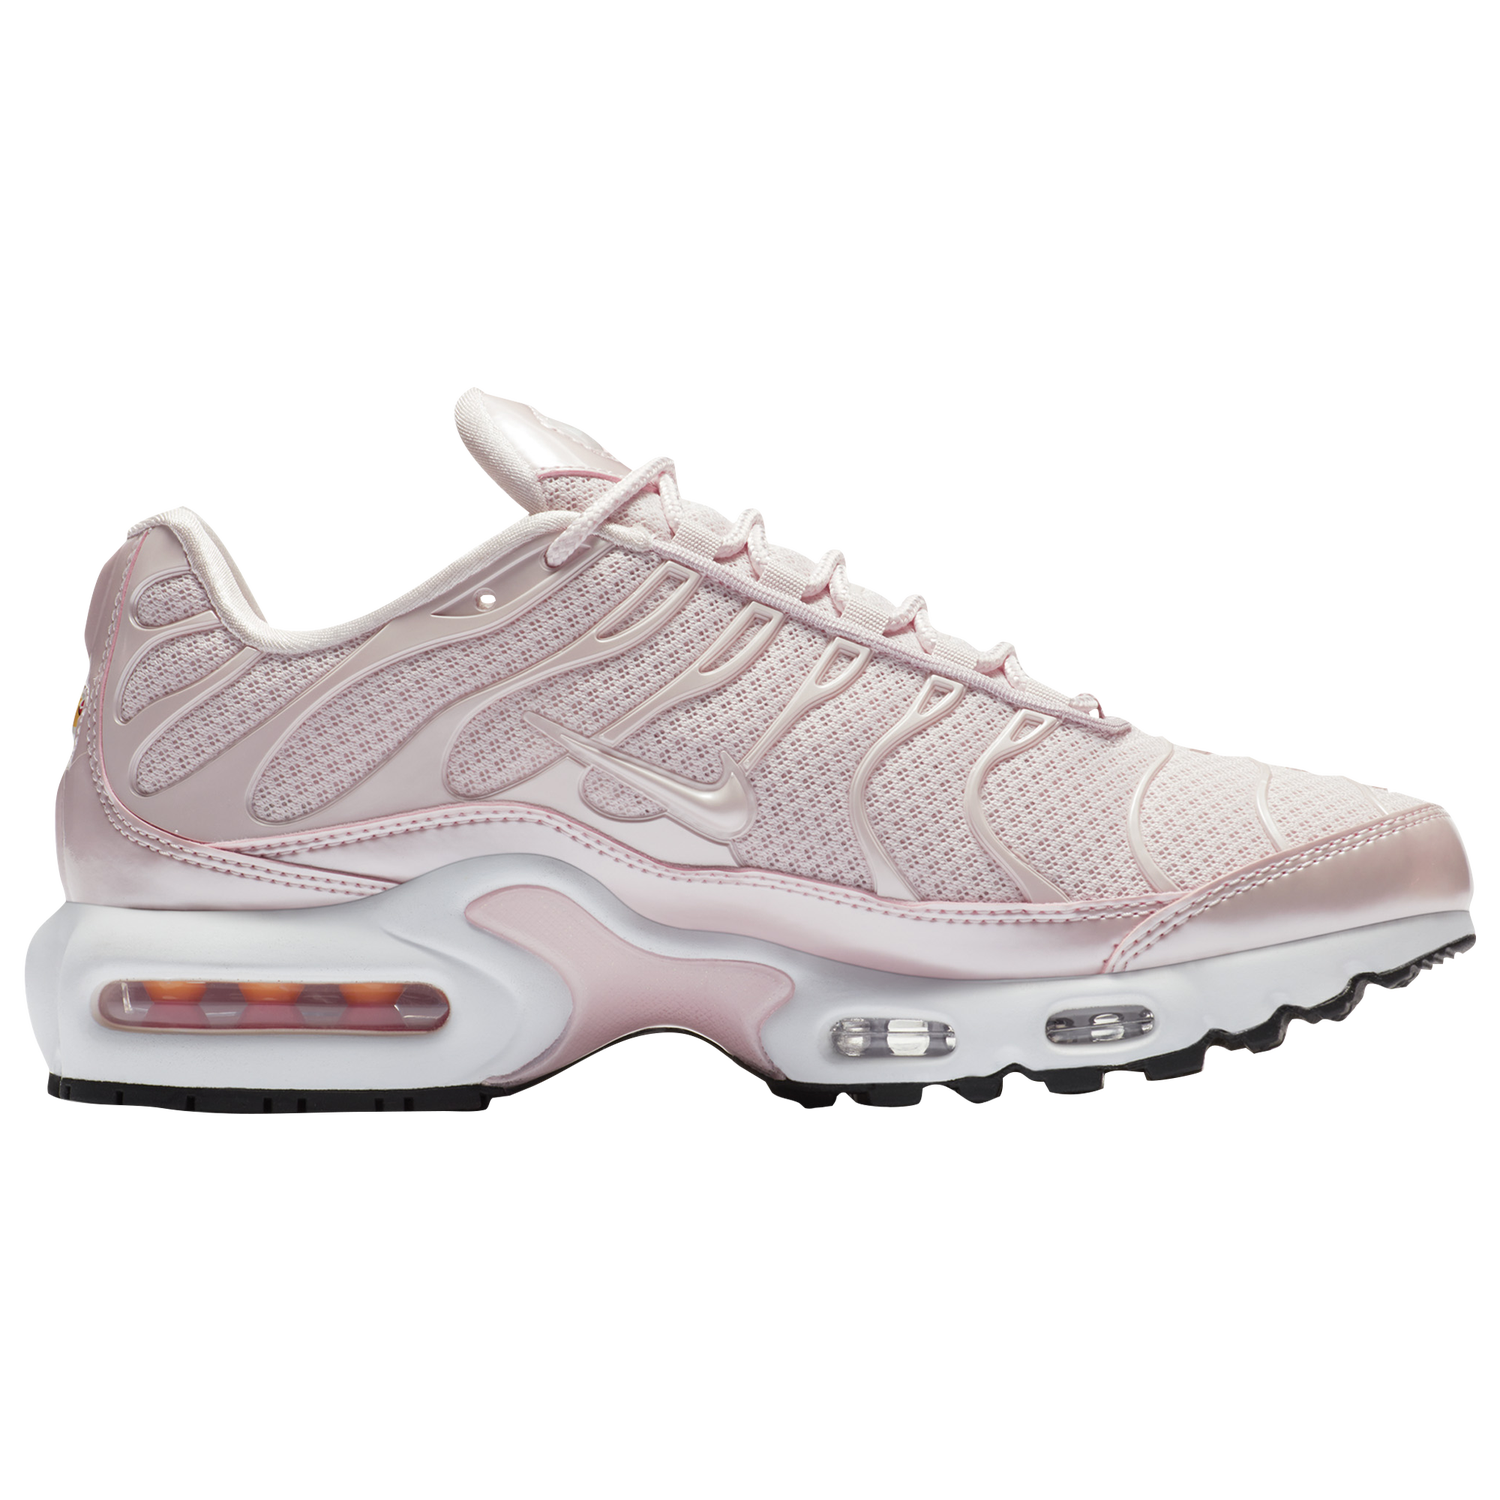 Nike Air Max Plus Femme  Casual Chaussures  Barely Rose/Barely